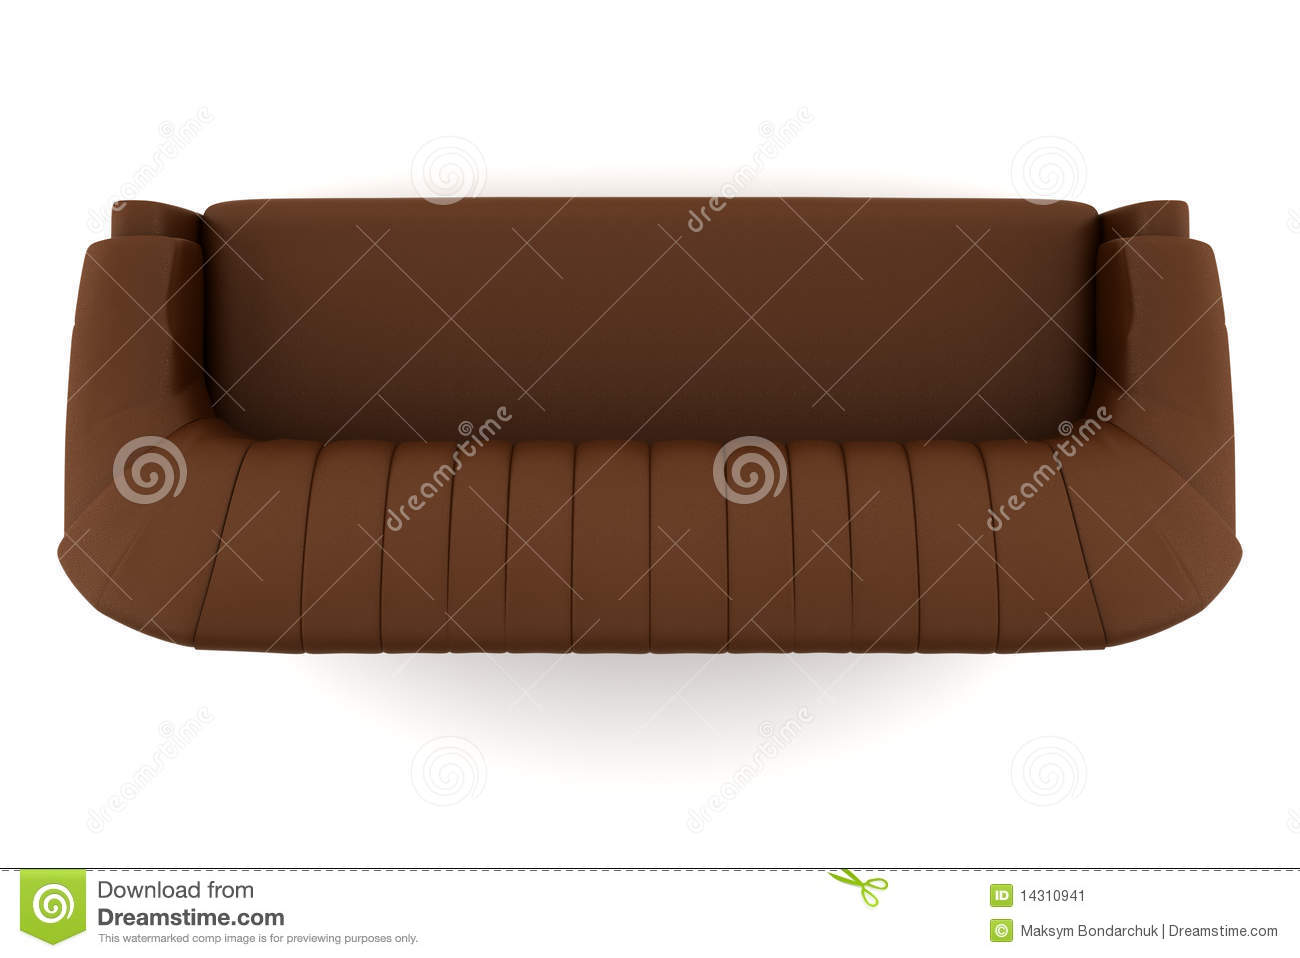 Clipart Couch Top View Top View Of Brown Leather Sofa